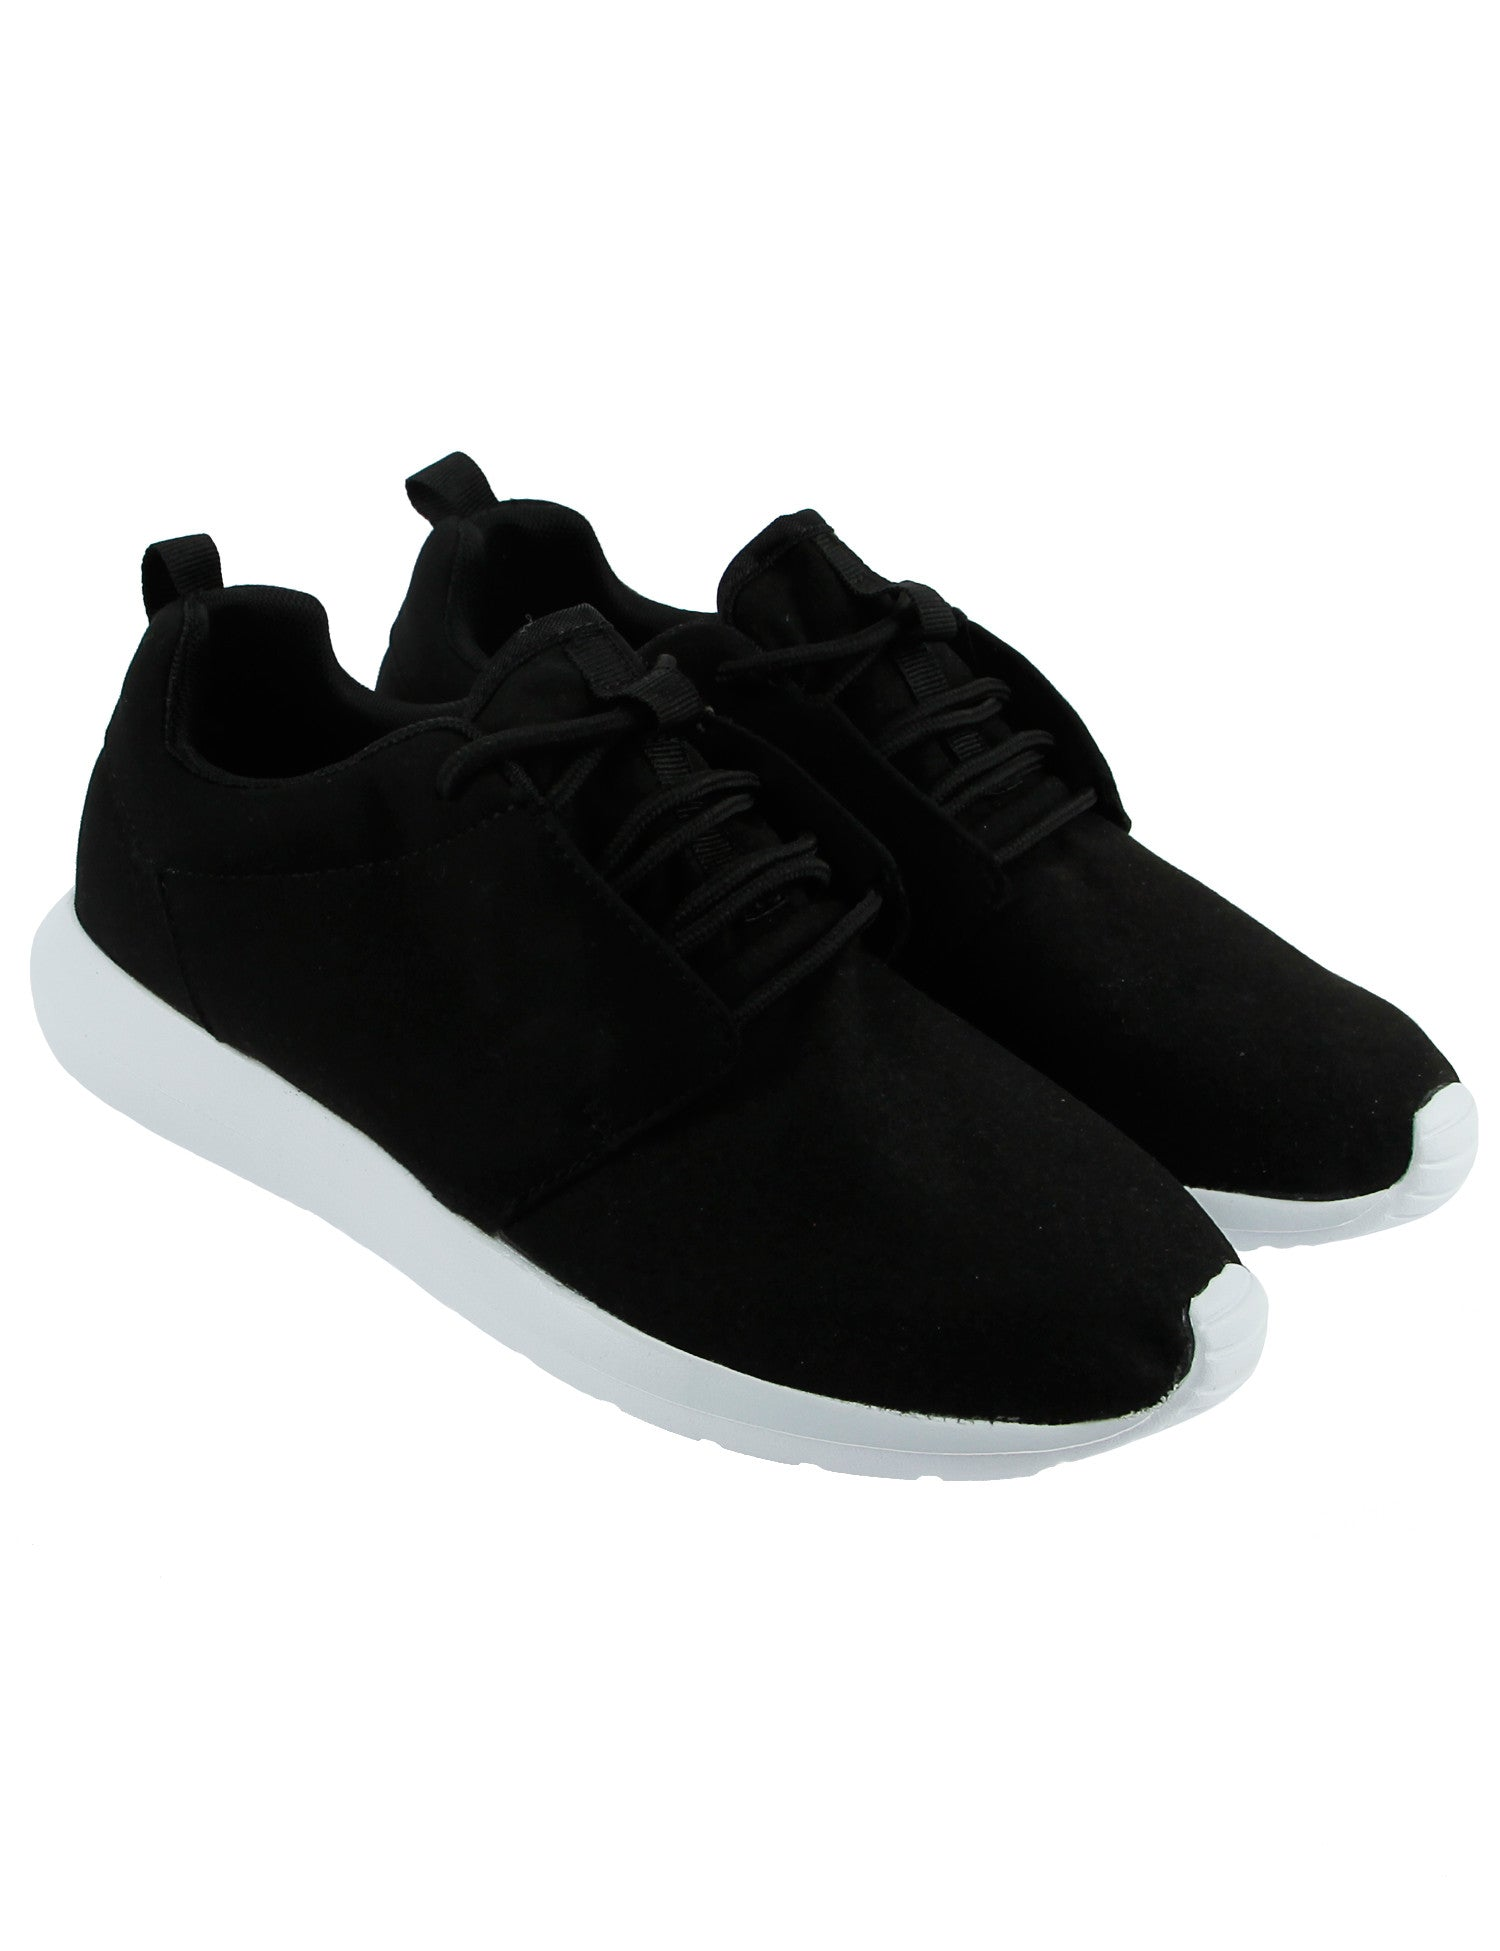 Cultz 150302 Shoes  Black